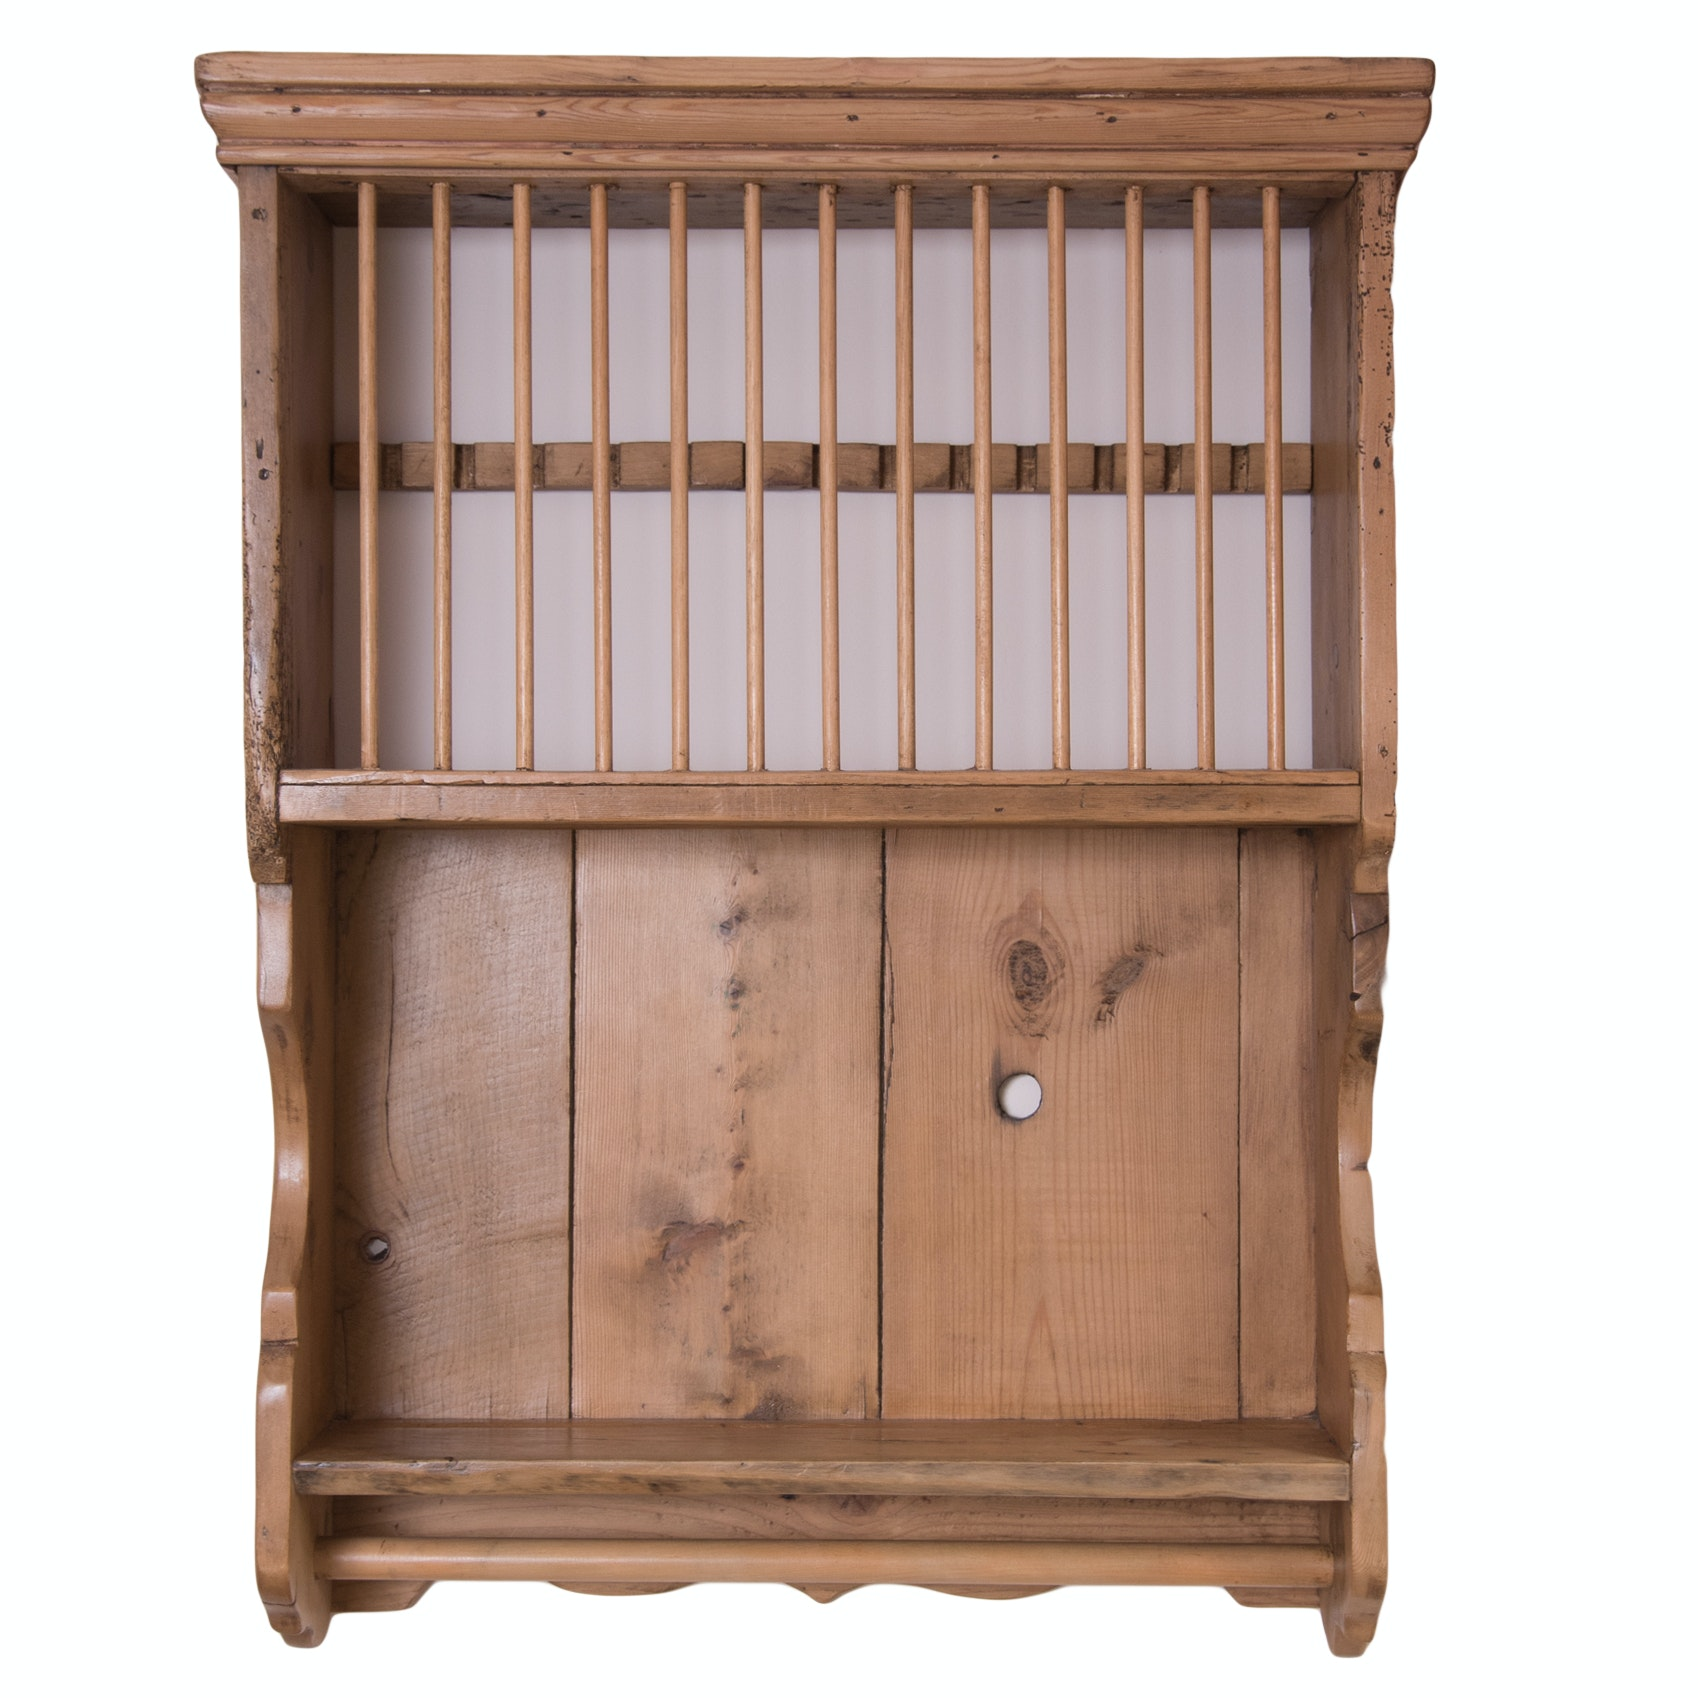 Antique Scrubbed Pine Plate Rack ...  sc 1 st  EBTH.com & Antique Scrubbed Pine Plate Rack : EBTH